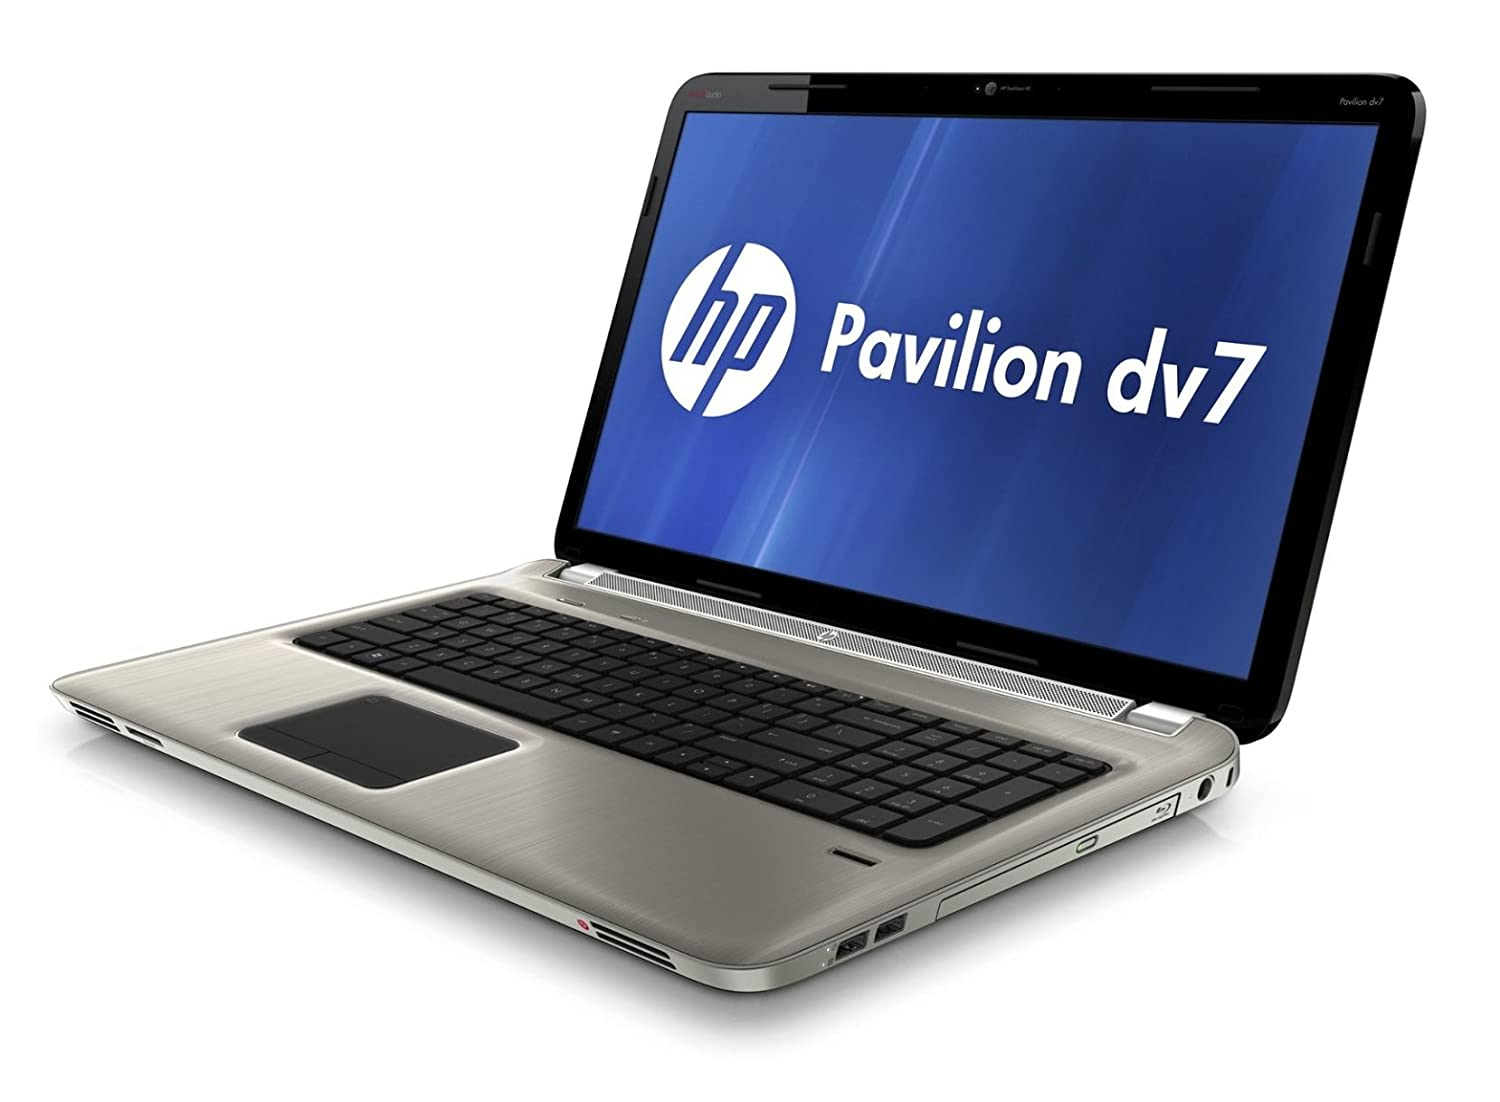 HP Pavilion dv7-6154ea Laptop PC (Intel Core i7-2630QM 2 GHz, 8GB RAM, 1 TB  HDD, Windows 7 Home Premium) - Steel Grey: Amazon.co.uk: Computers &  Accessories